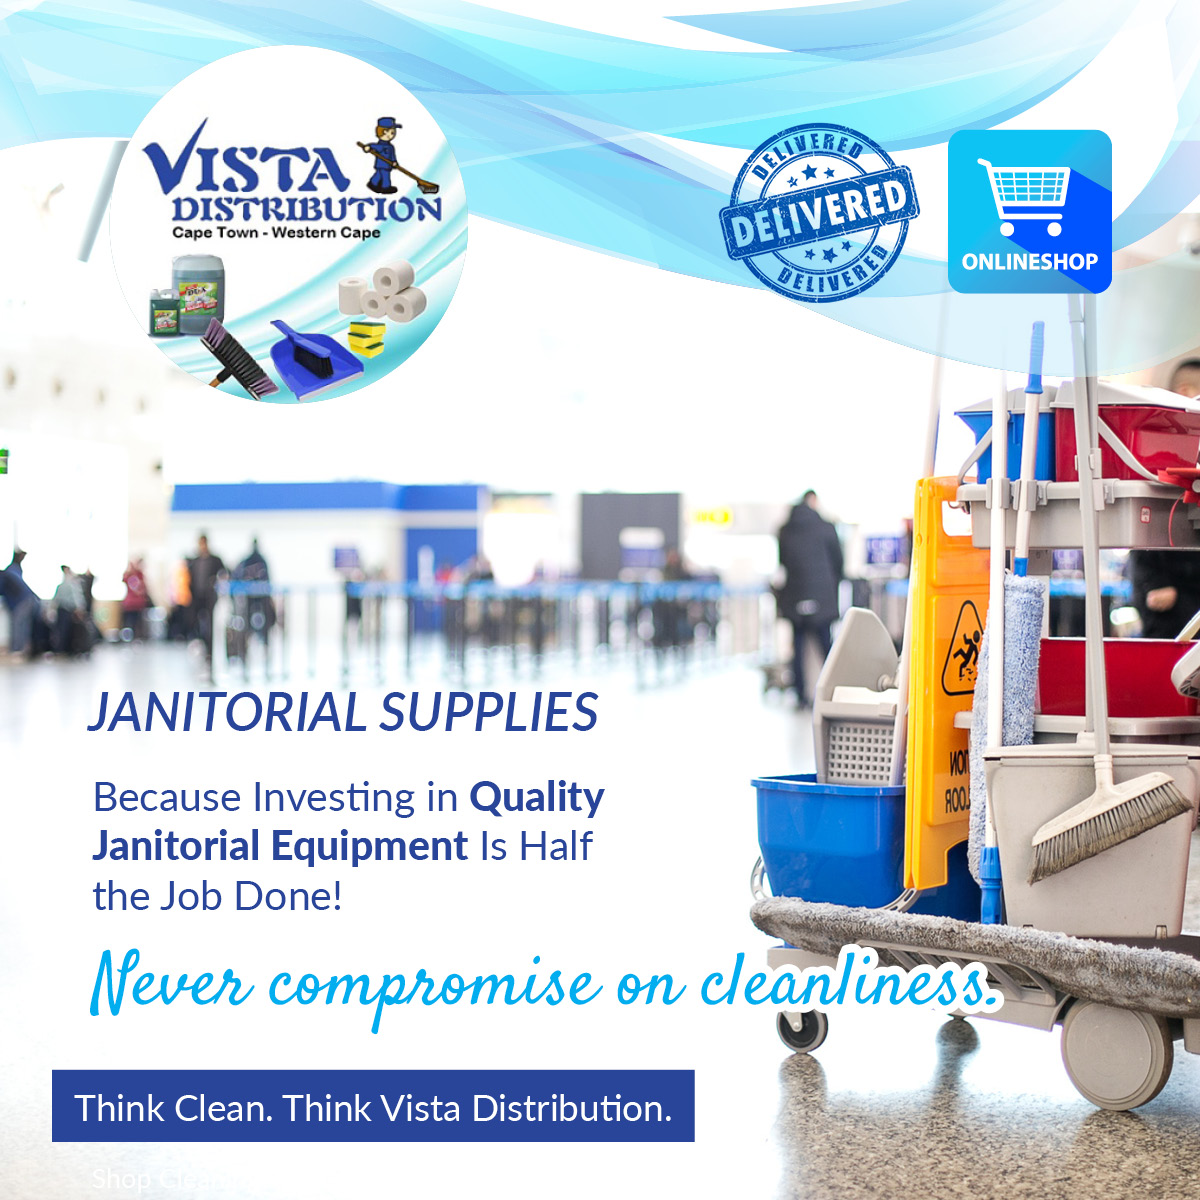 SUPER AFFORDABLE, SUPER QUALITY Cleaning and Catering Products for your household or business!